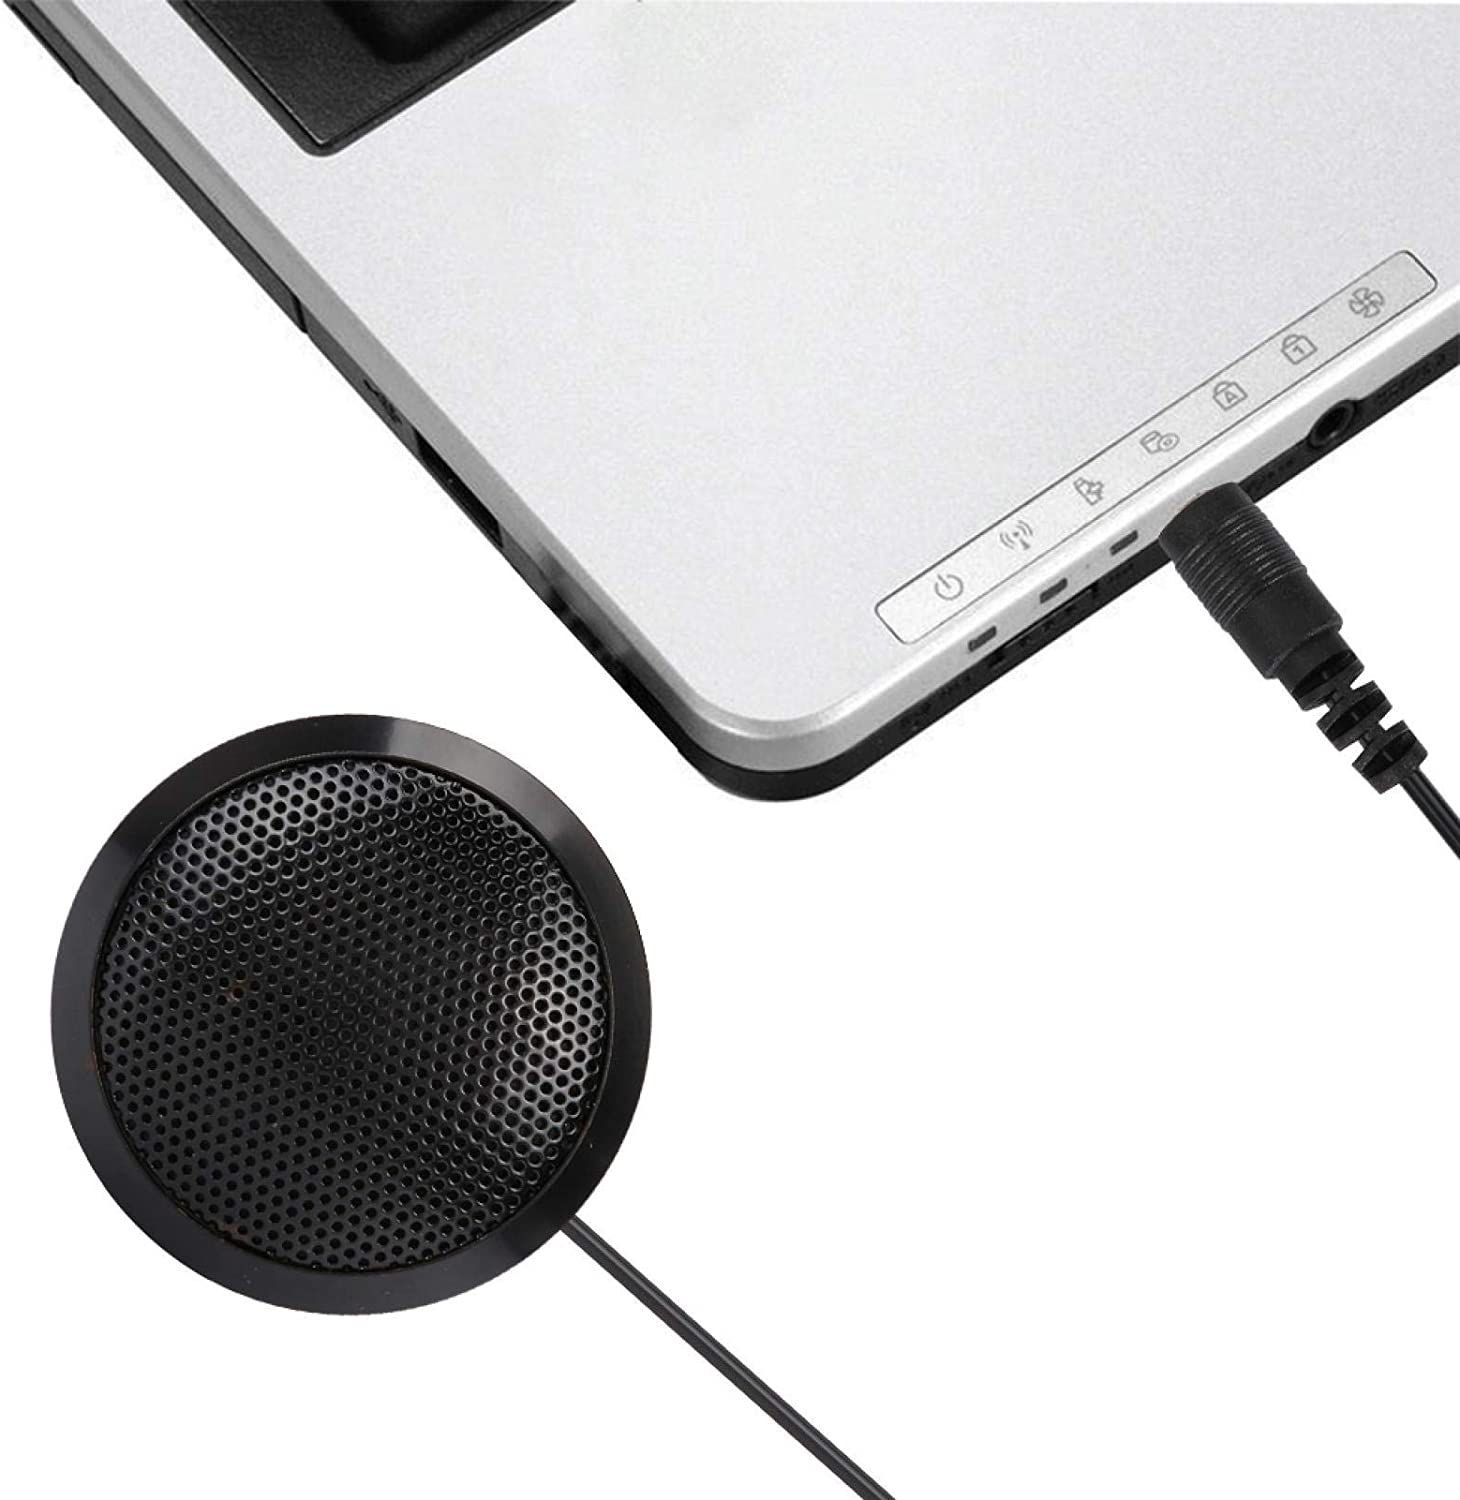 Tomanbery Portable High Speed Desktop Comp Ranking TOP3 Gorgeous Conference Microphone